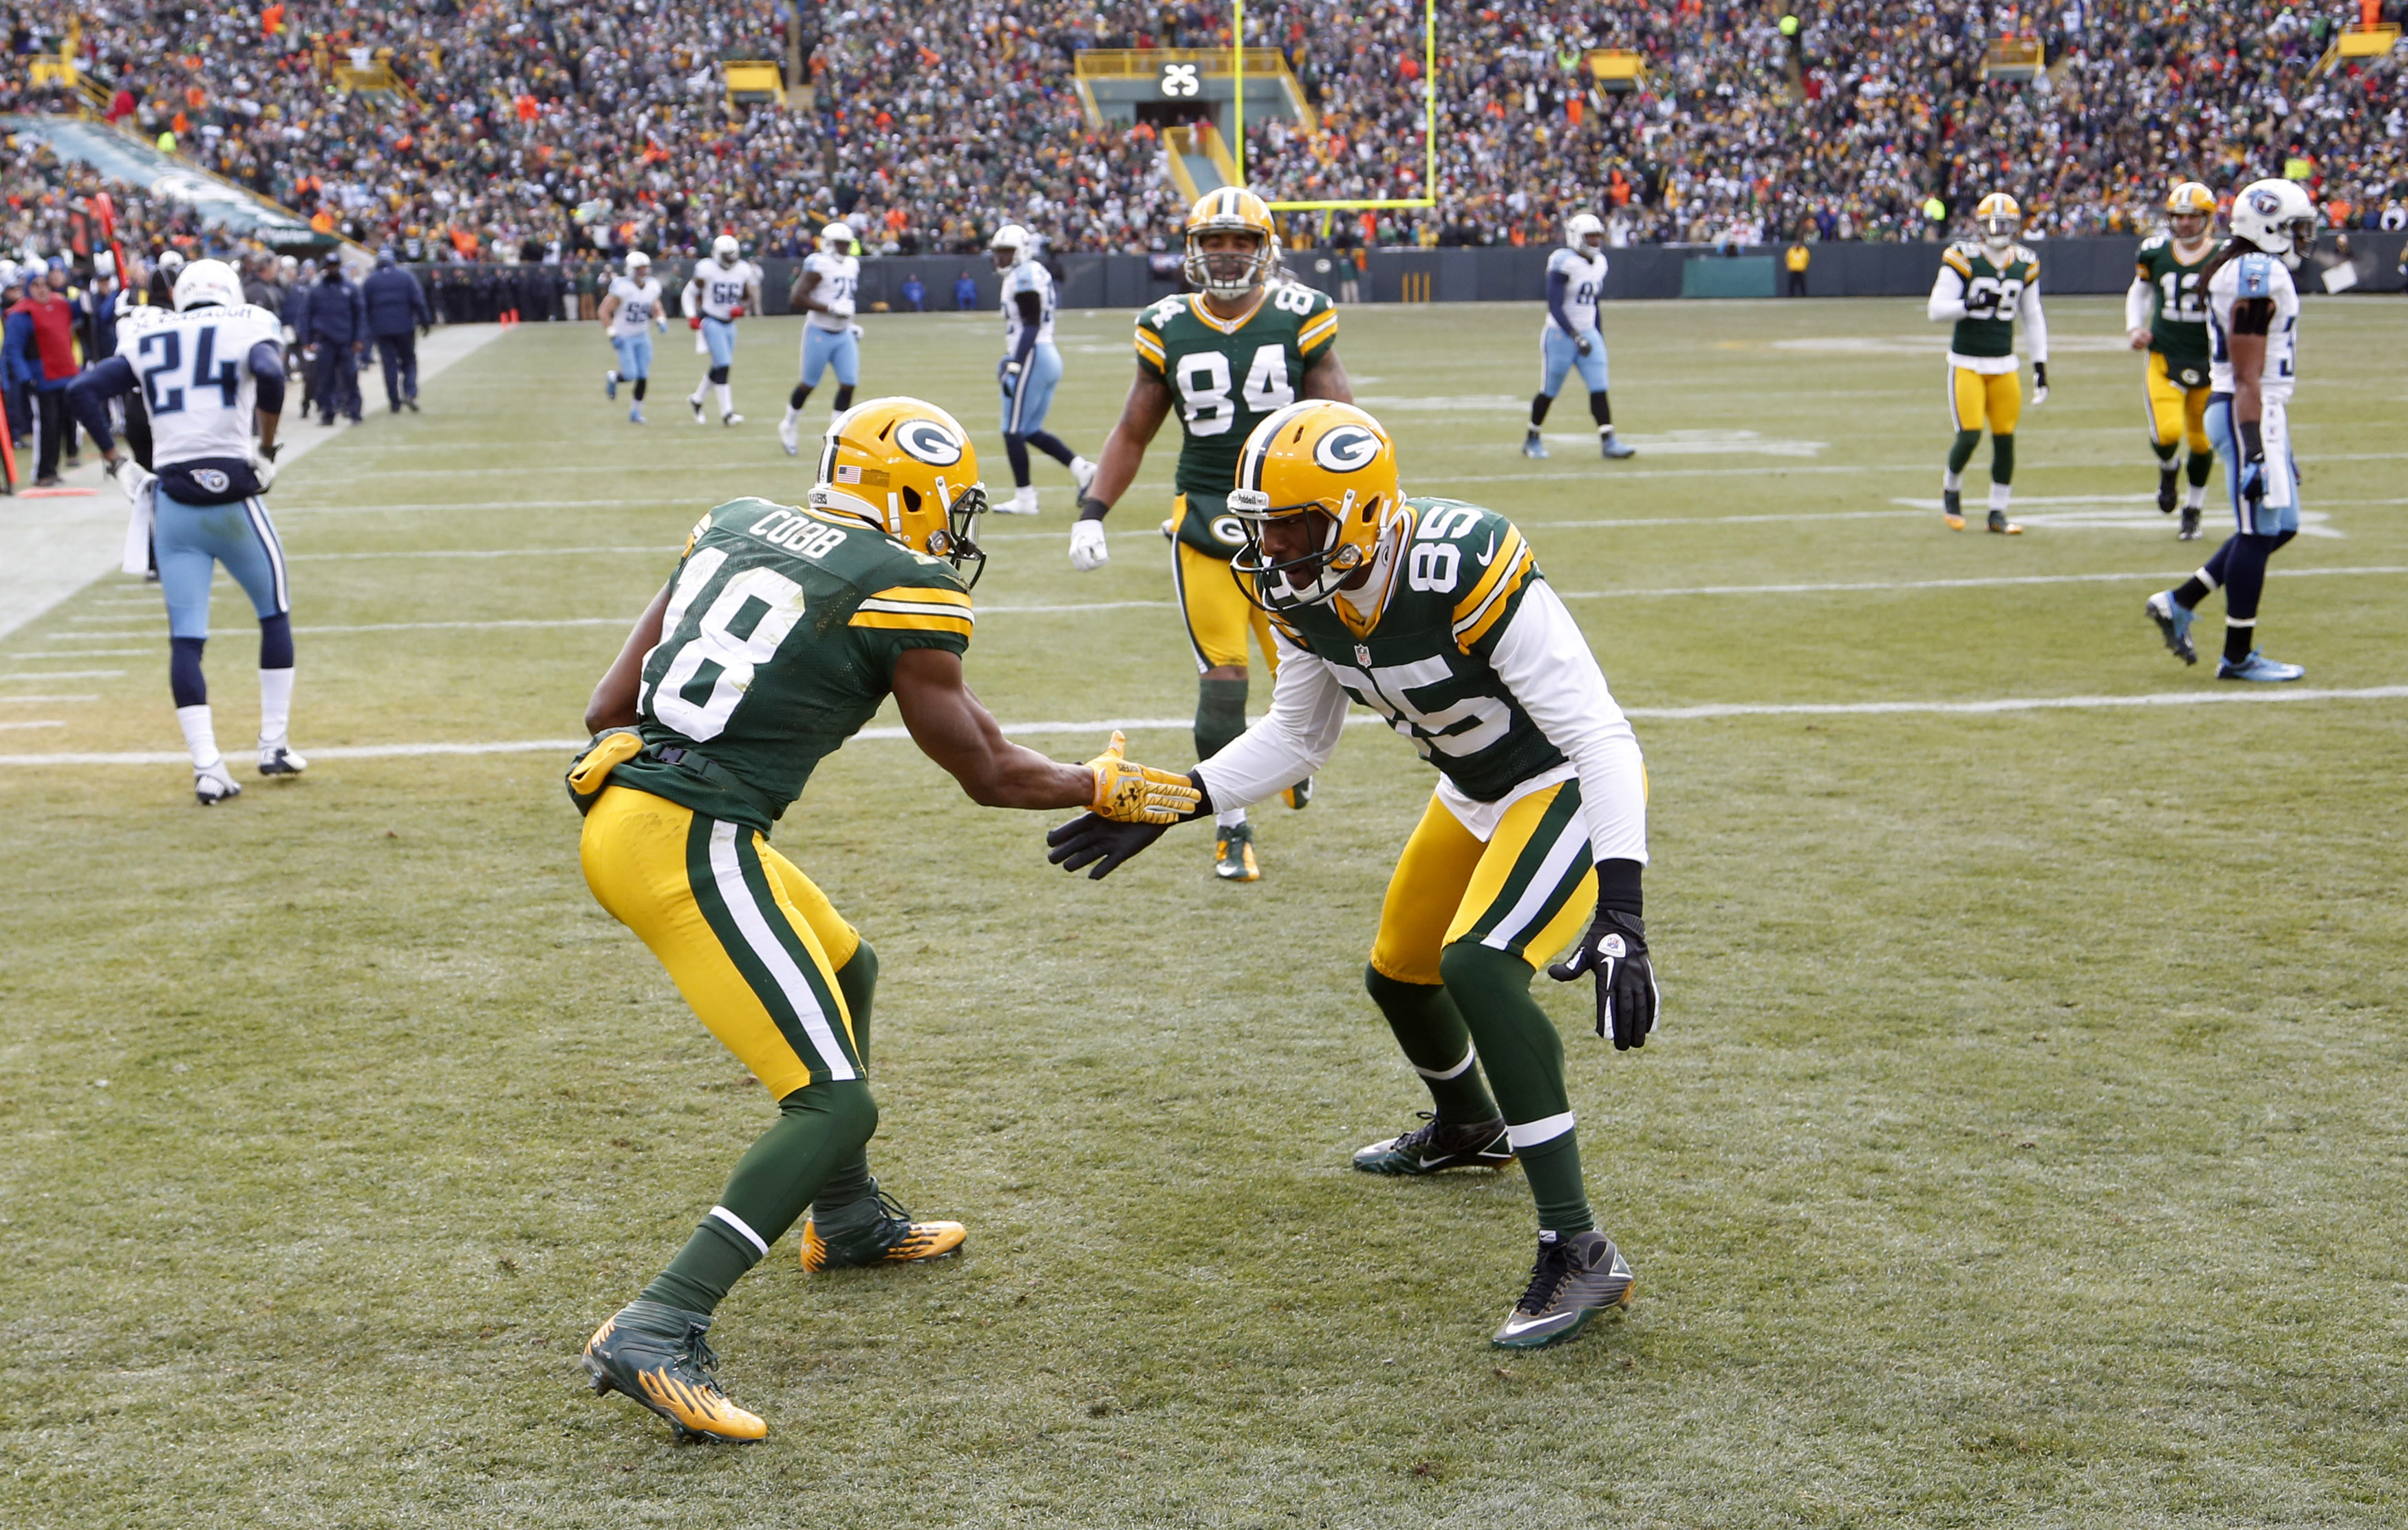 Green Bay Packers wide receiver Randall Cobb (L) celebrates his touchdown against the Tennessee Titans.